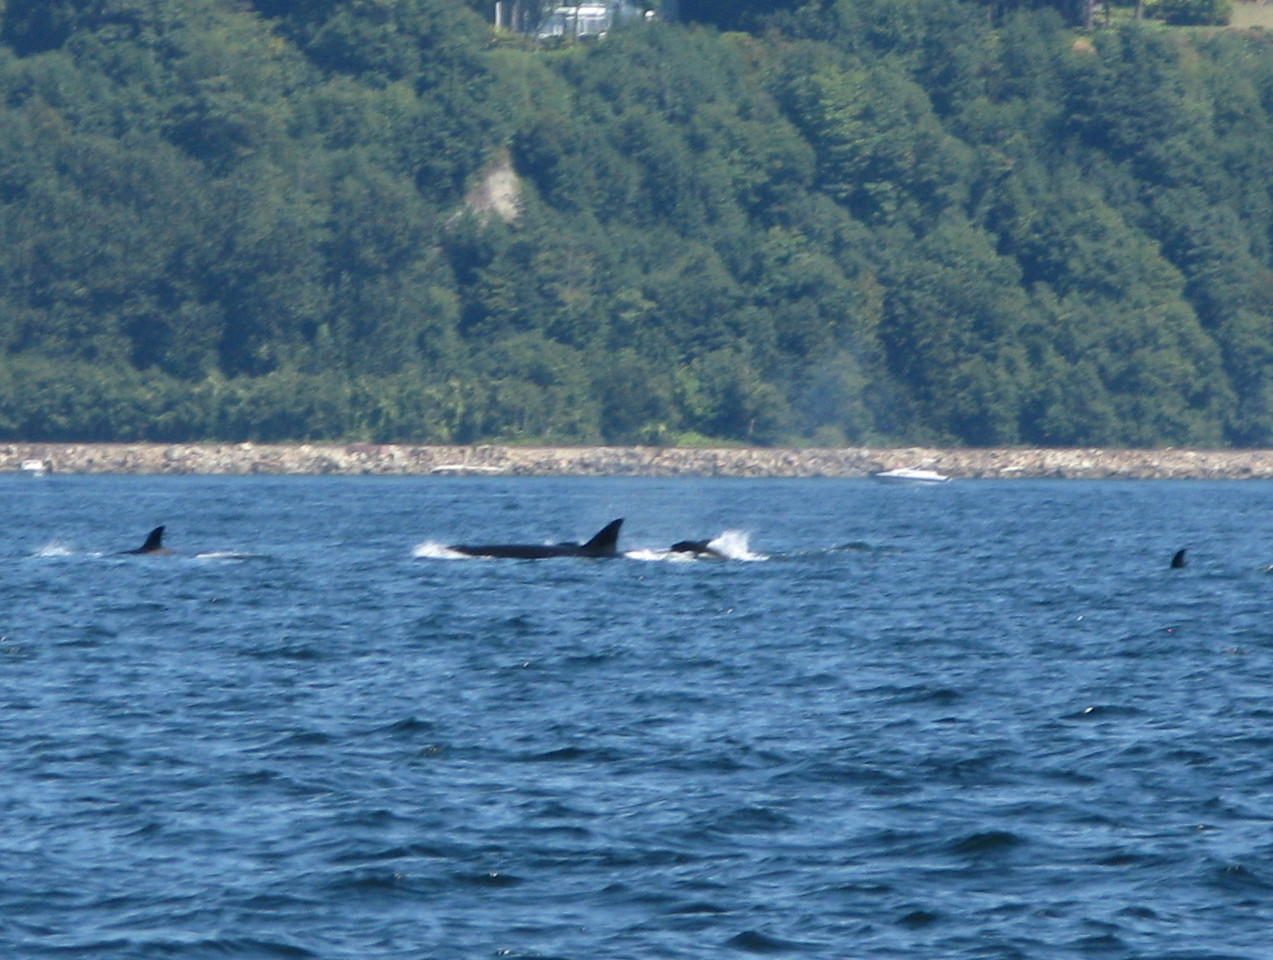 When we first saw this group of cetaceans in the water off of Edmonds, we were not sure if they were Dall's porpoises or killer whales.